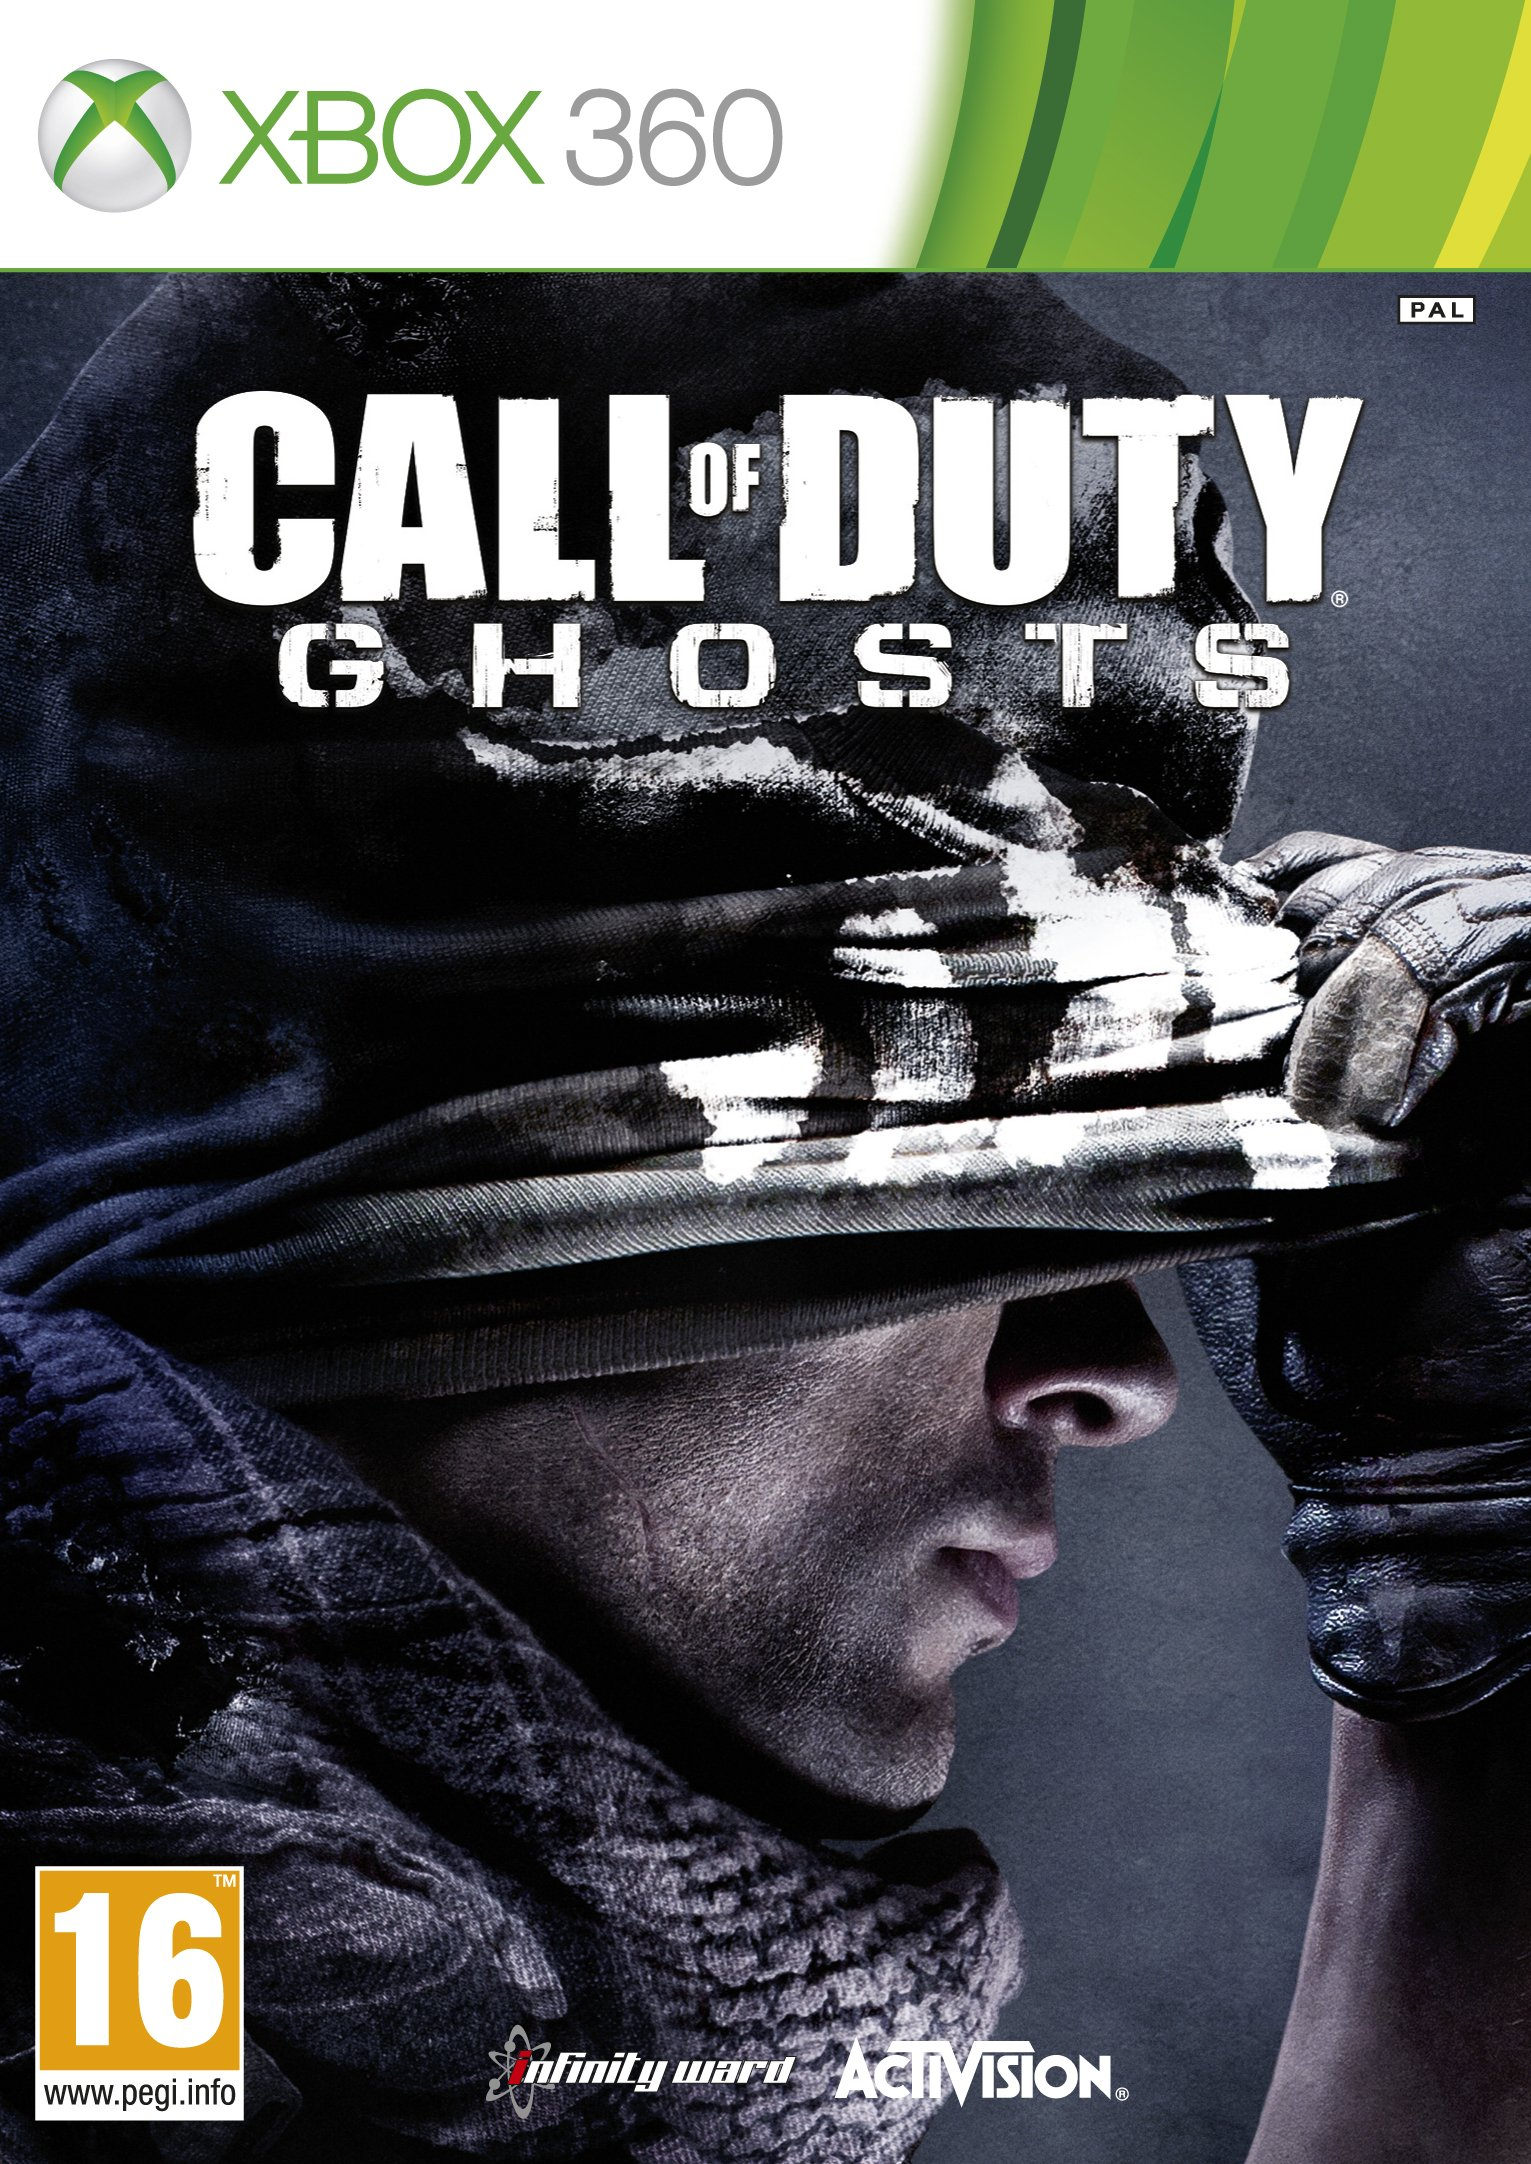 Call of Duty: Ghosts (Xbox 360) product image